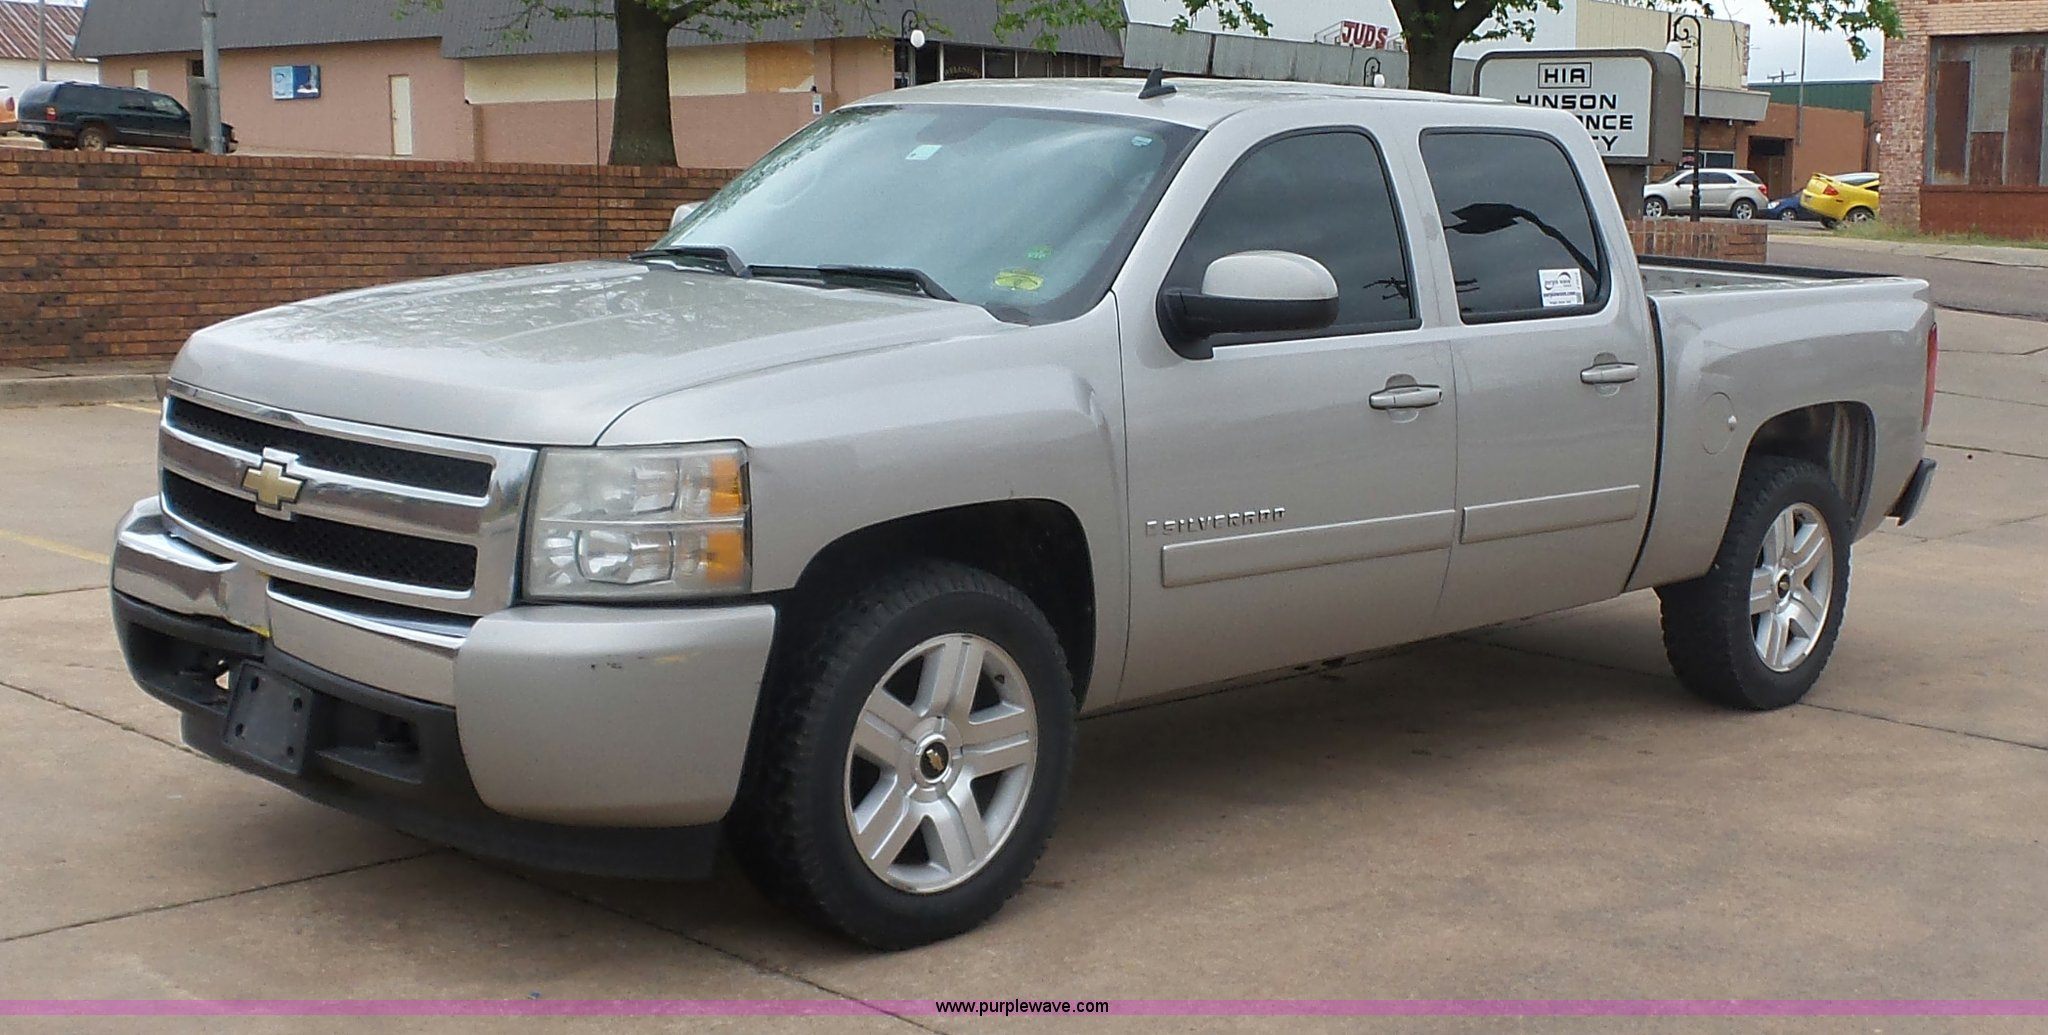 vortecmax vehicle photo bed short extended chevrolet cab stockton lifted truck details silverado